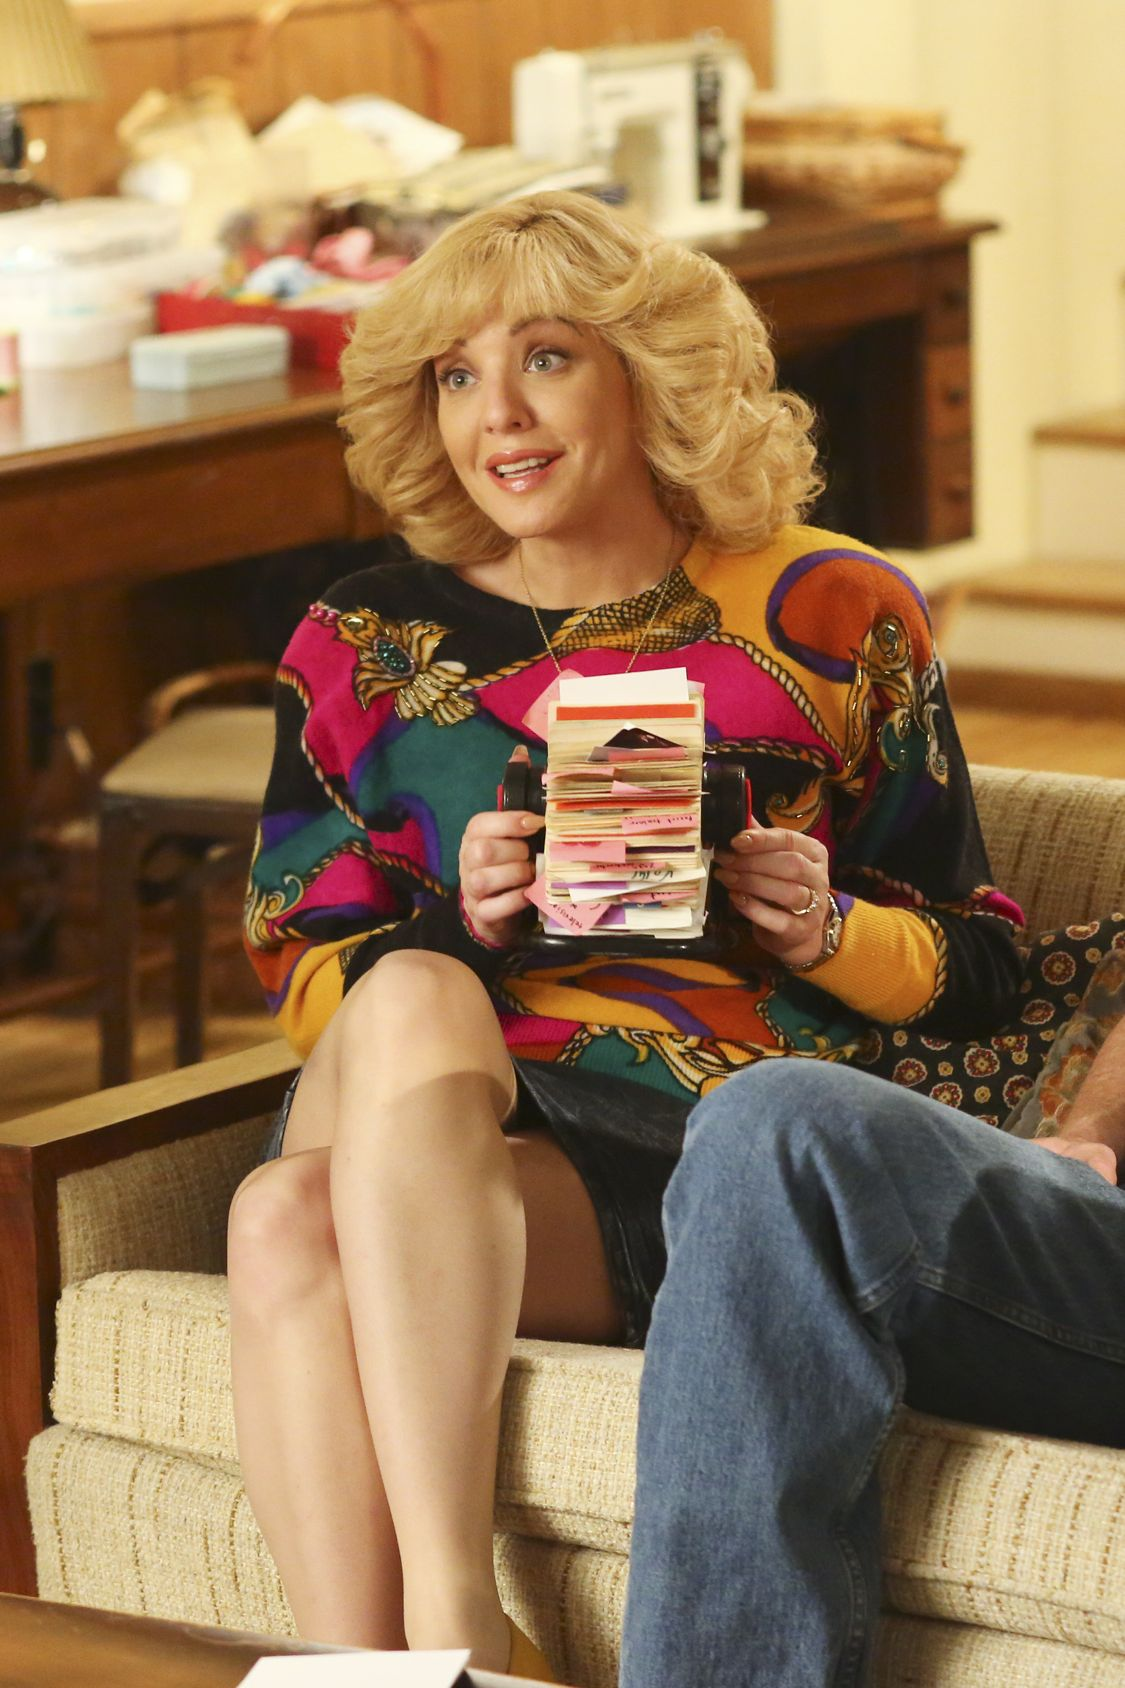 """THE GOLDBERGS -""""Physical Education Education"""" - Erica and Lainey try to find Bill a woman of interest by using new technology for dating. They recruit Adam to create a demo reel, but Beverly insists she will find someone the old fashioned way. Meanwhile, after a """"failed"""" aptitude test, Barry decides he wants to be a gym teacher and becomes Coach Mellor's apprentice, on """"The Goldbergs,"""" WEDNESDAY, SEPTEMBER 28 (8:00-8:30 p.m. EDT), on the ABC Television Network. (ABC/Michael Ansell) WENDI MCLENDON-COVEY"""